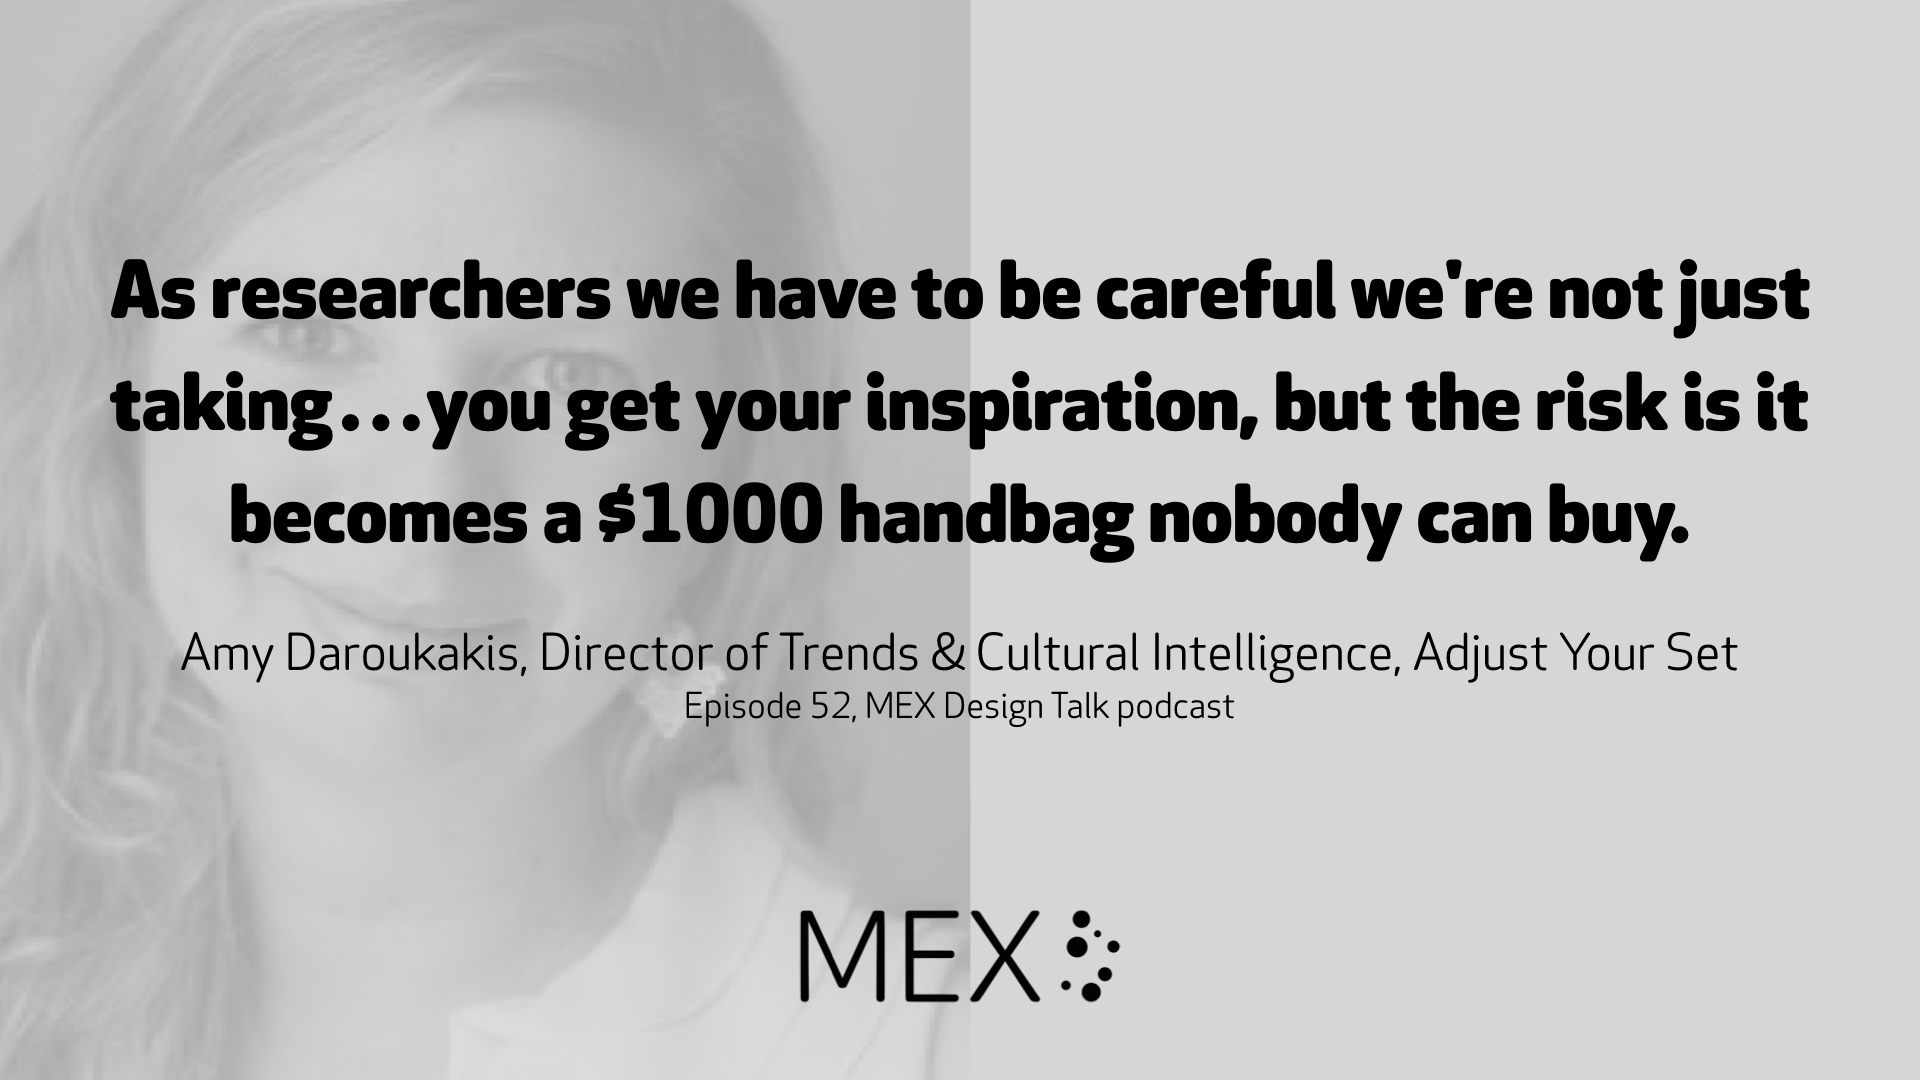 As researchers we have to be careful we're not just taking…you get your inspiration, but the risk is it becomes a $1000 handbag nobody can buy. 	 Amy Daroukakis, Director of Trends & Cultural Intelligence, Adjust Your Set Episode 52, MEX Design Talk podcast